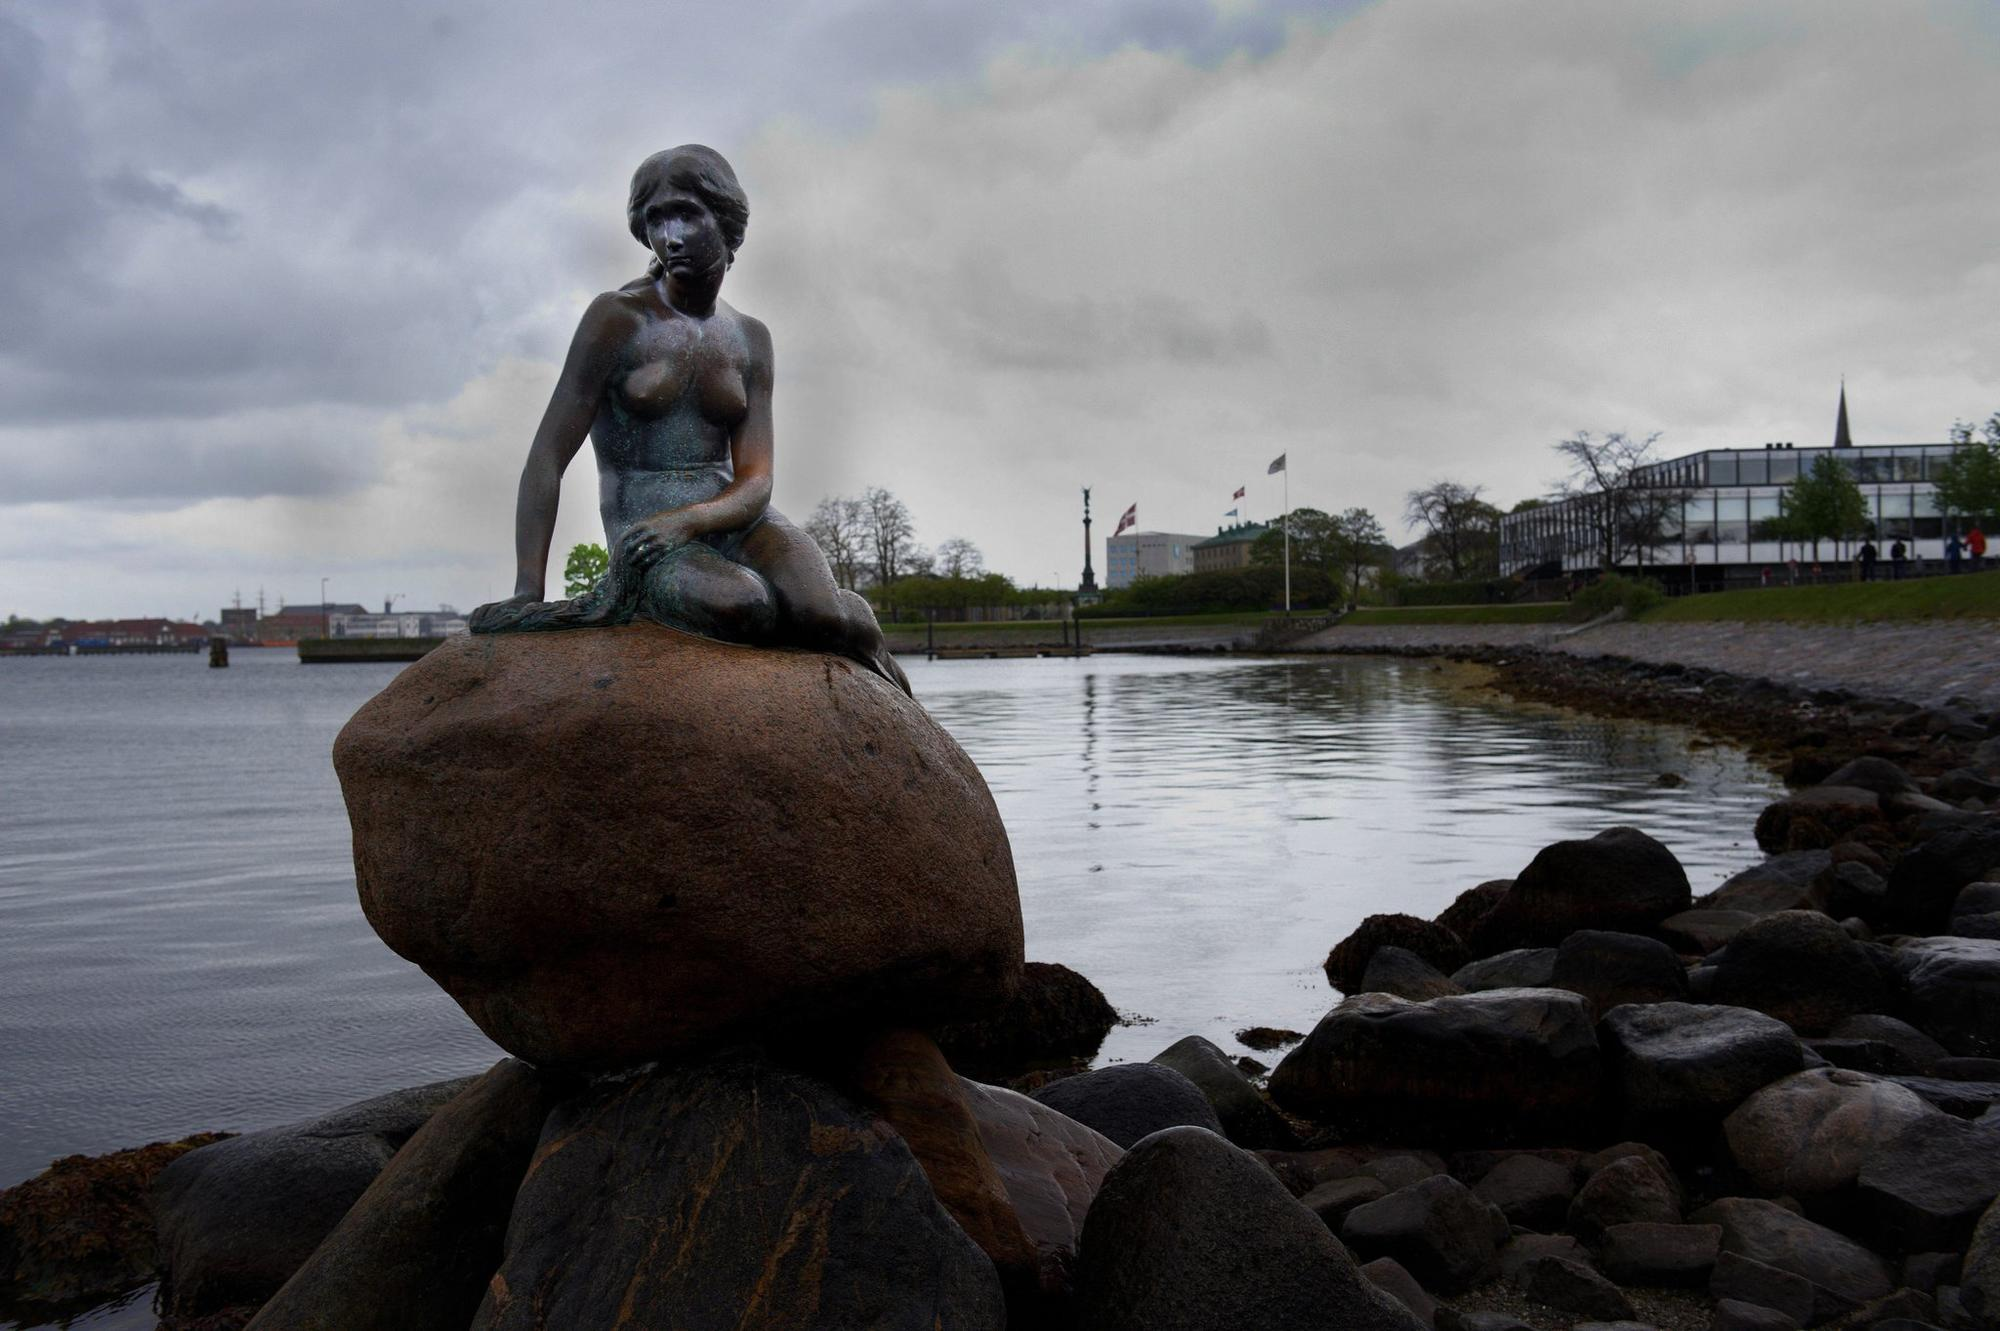 """The Little Mermaid,"" a bronze statue by Edvard Eriksen, that was removed — and later reinstated — to Facebook."